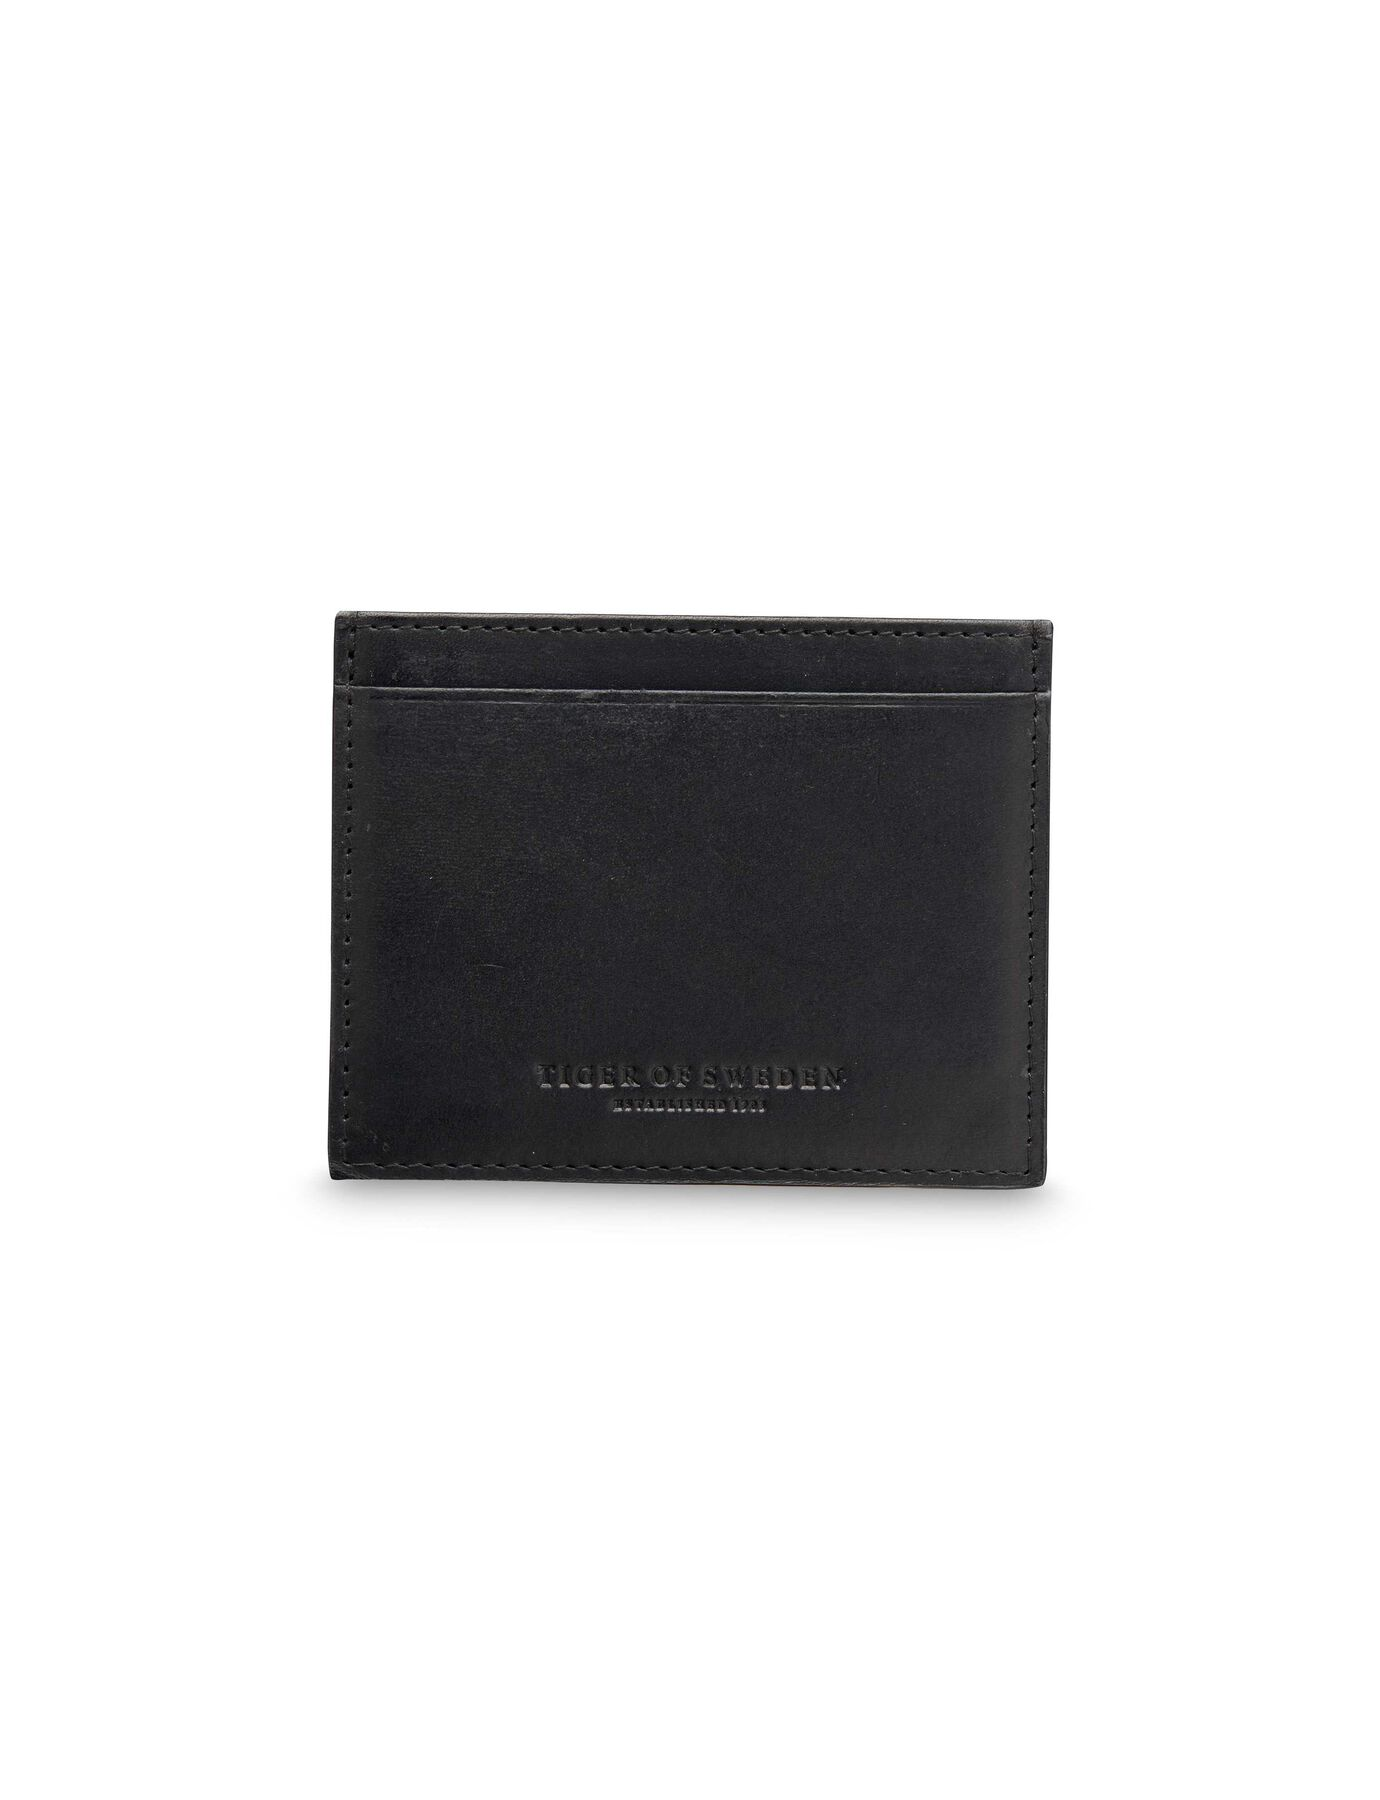 SAWLEY CARD HOLDER in Black from Tiger of Sweden